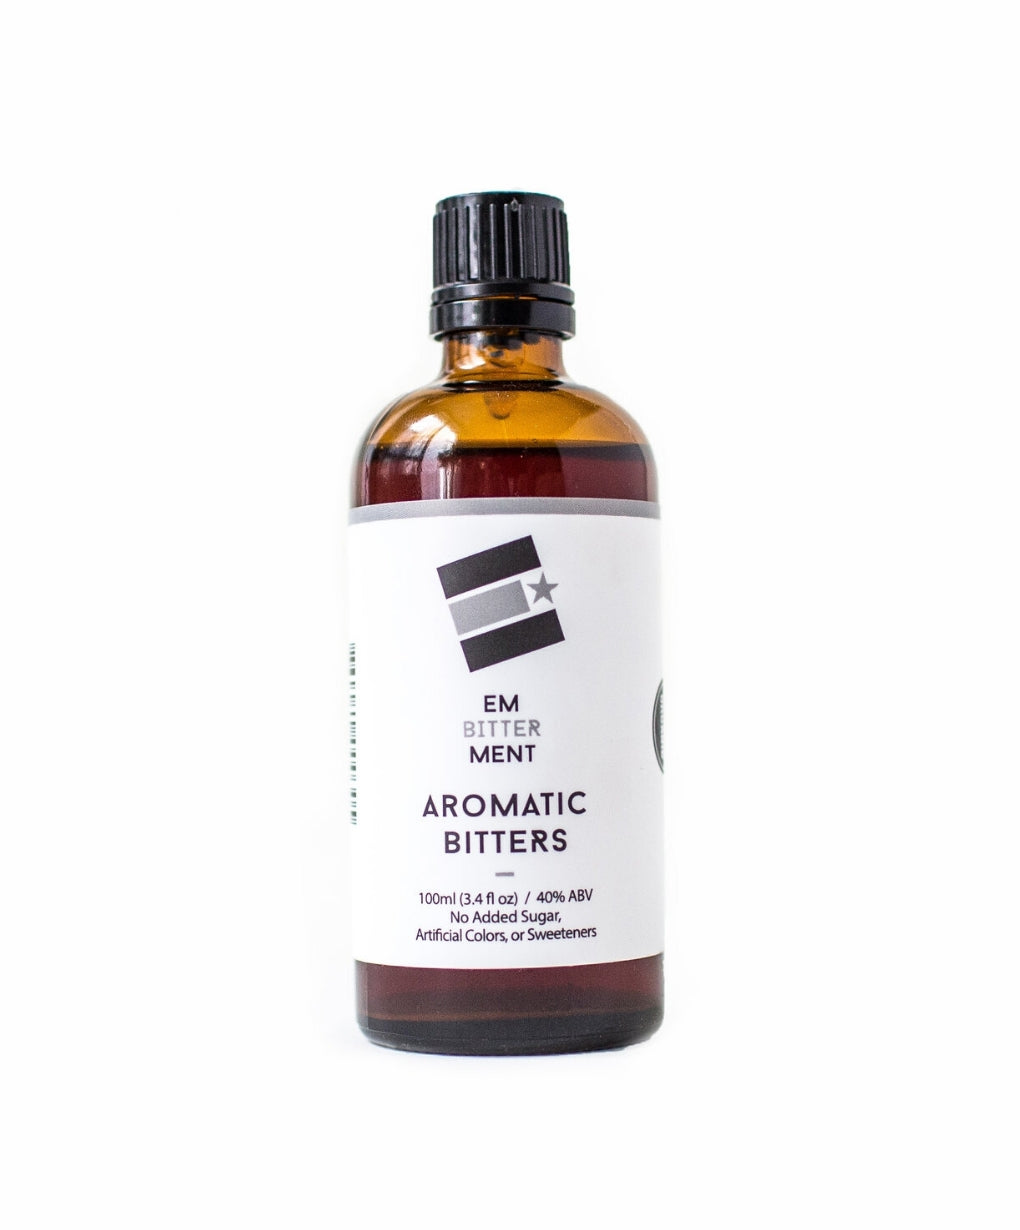 Aromatic Bitters by Embitterment